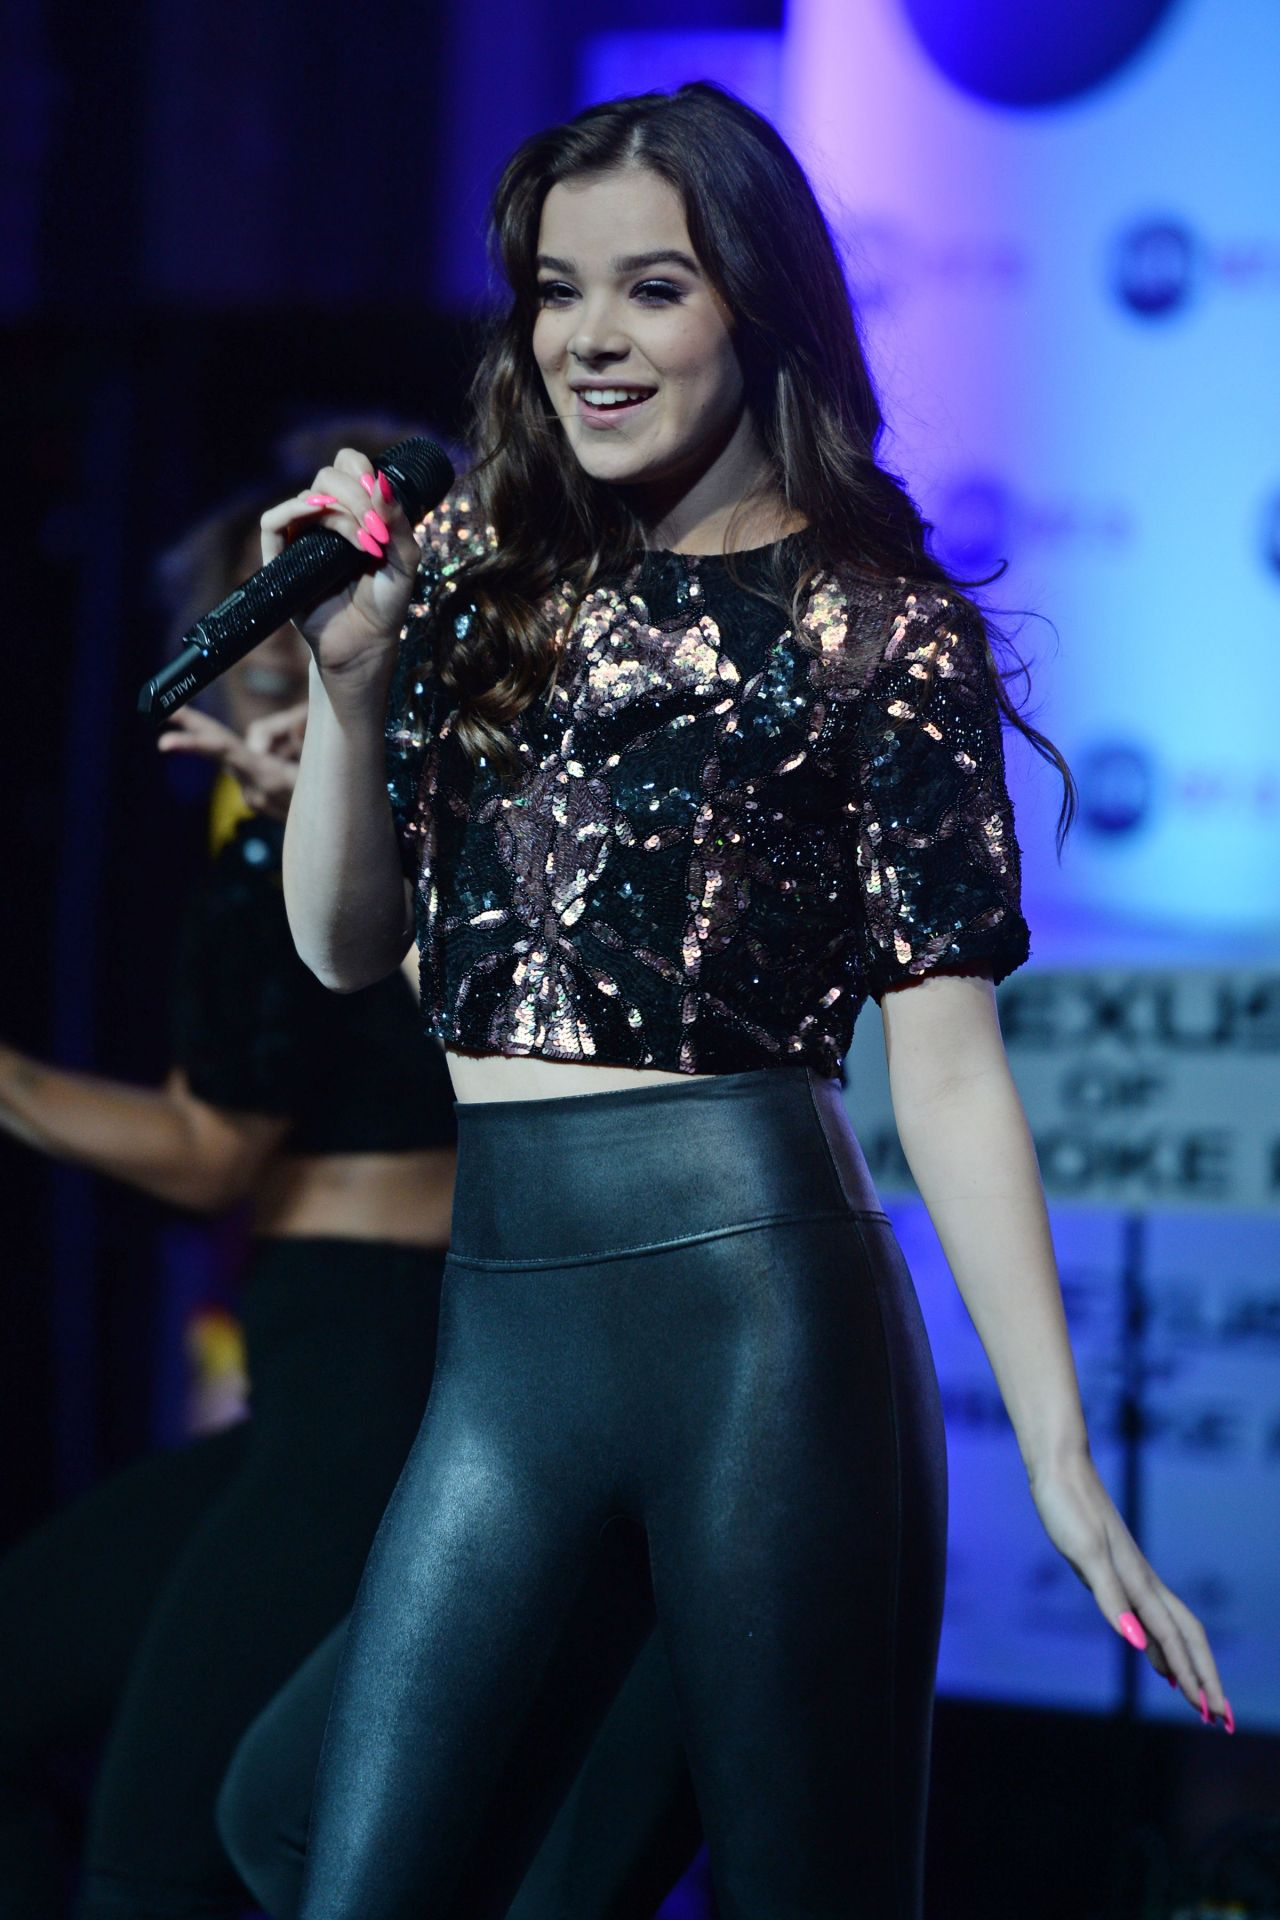 Hailee Steinfeld On The Cover Of Fashion Magazine March: Hits 97.3 Sessions At Revolution In